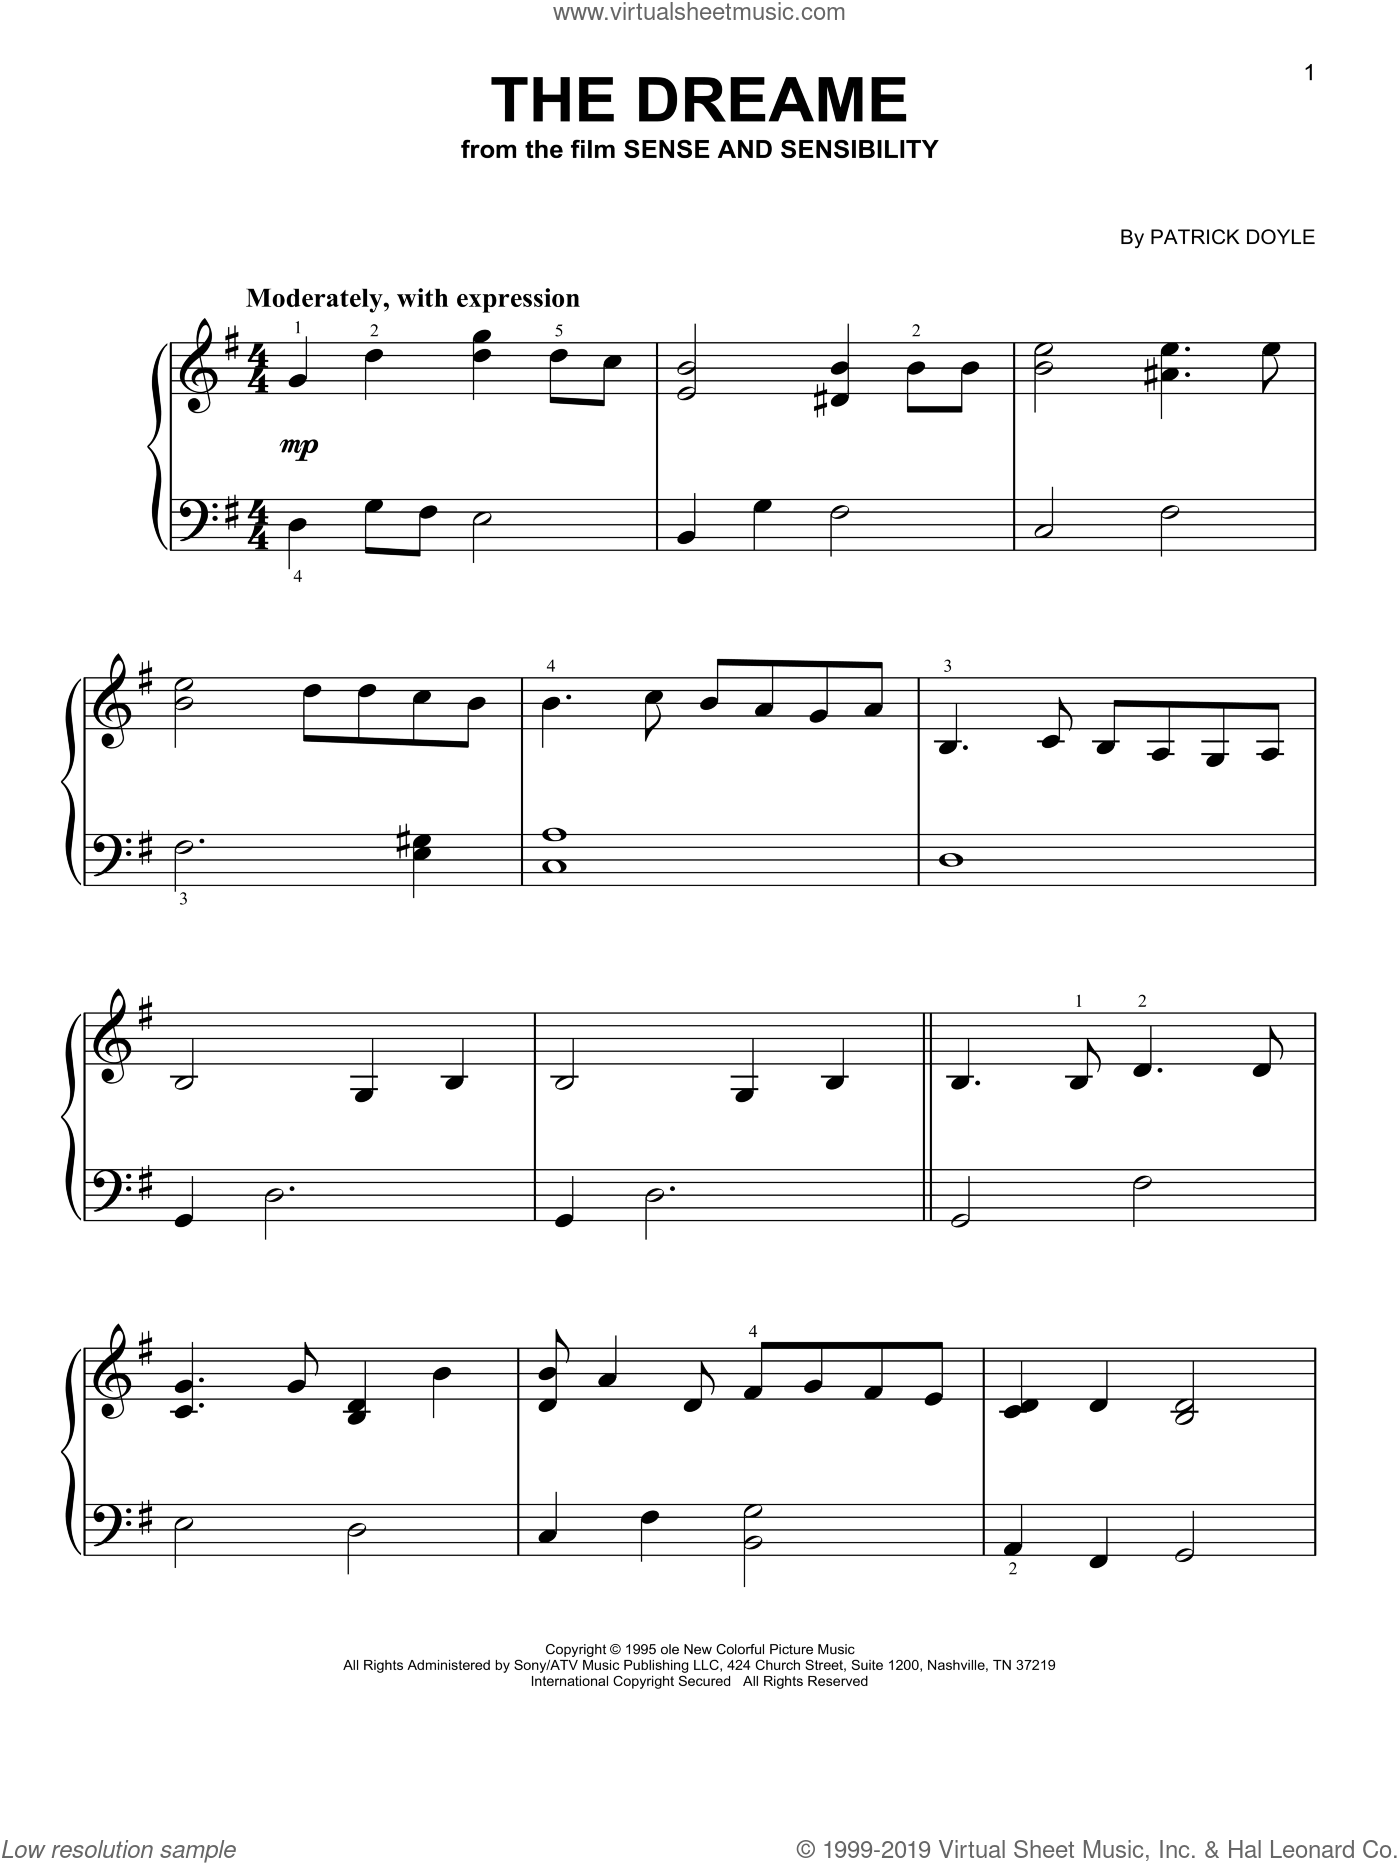 The Dreame (from Sense and Sensibility) sheet music for piano solo by Patrick Doyle, beginner skill level